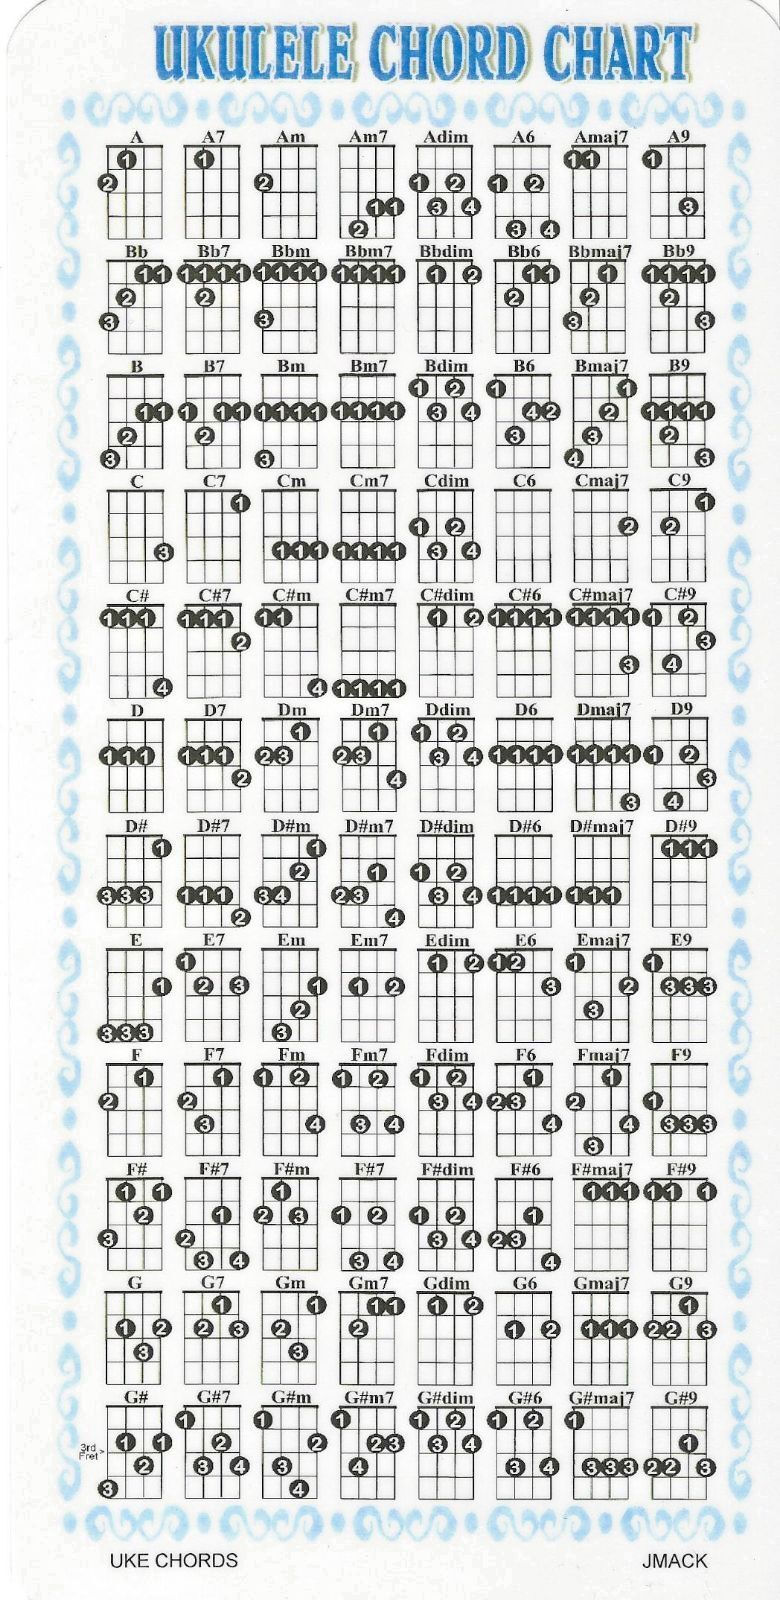 Bewitching image with ukulele chord chart printable